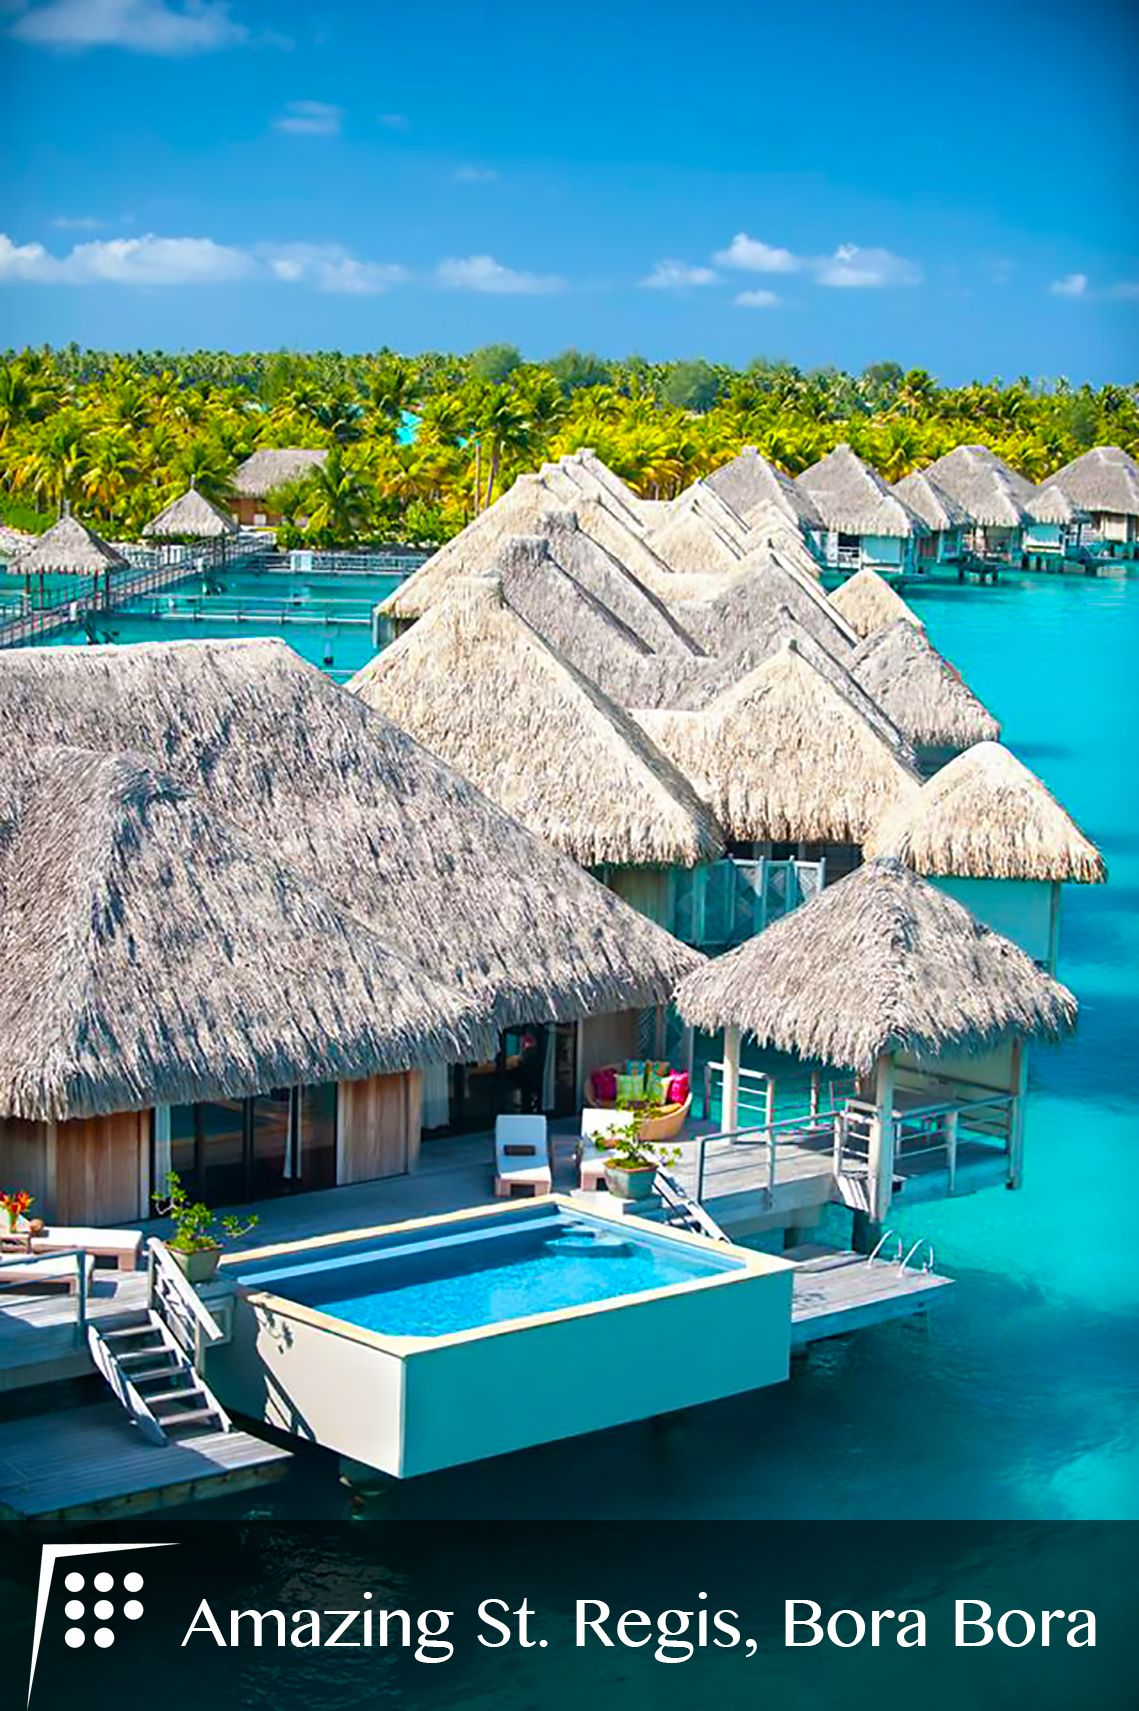 Did You Know That The Movie Couples Retreat Starring Vince Vaughn And Jon Favreau Was Shot At St Regis Resort Bora